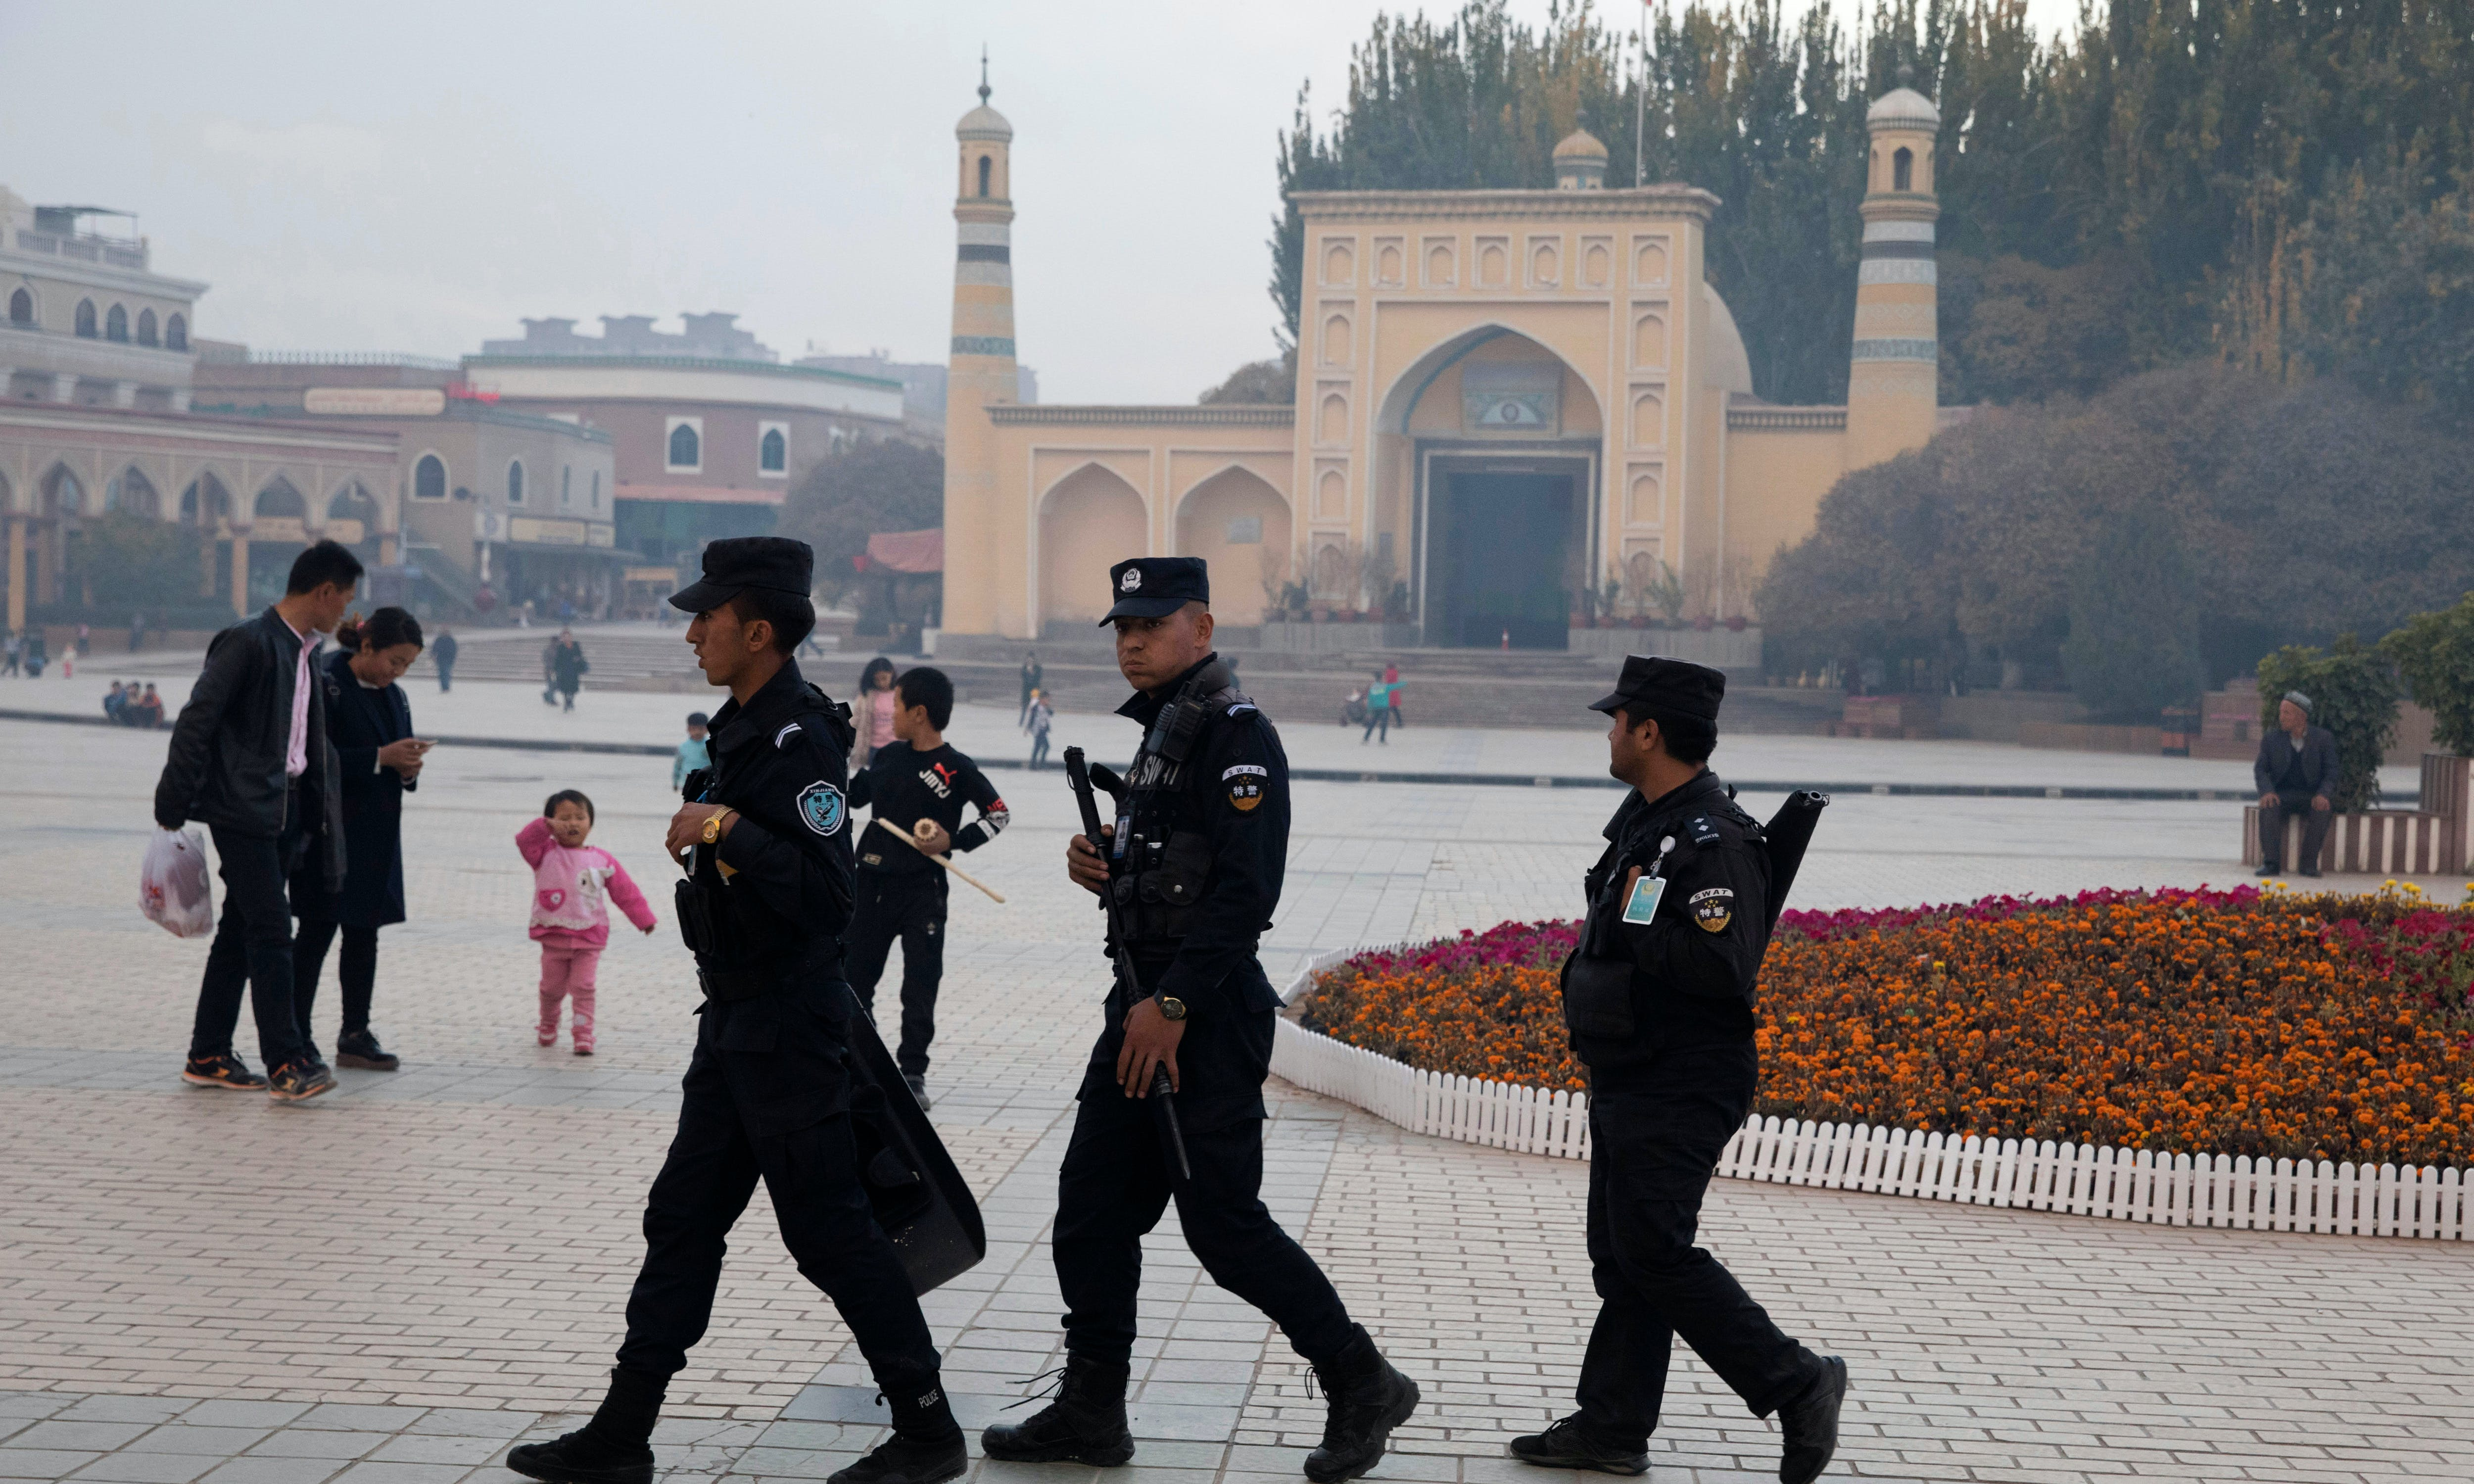 Fearing Violence, China Cracks Down on Uyghur Identity Worldwide